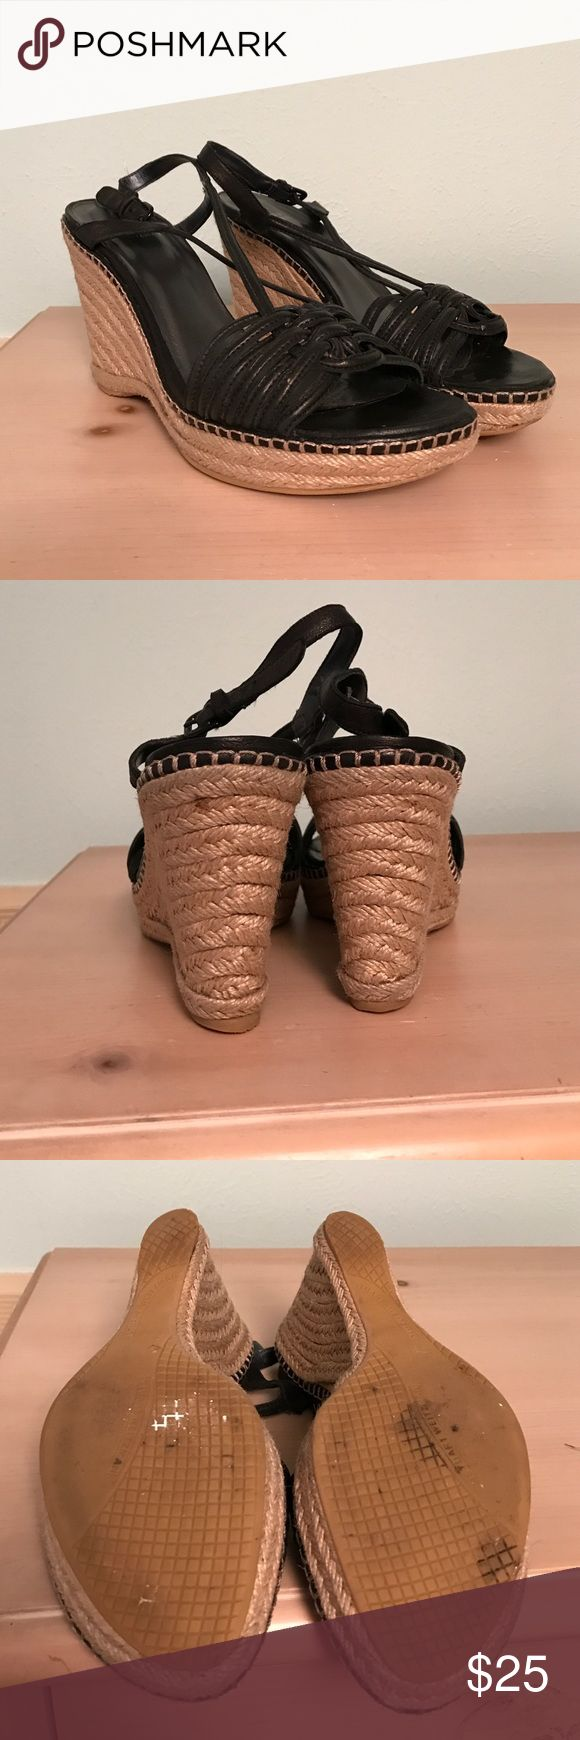 Stuart Weitzman Wedges Has some wear- the inside is coming up a little but can be glued down or taken to a shoe-maker and fixed. Made in Spain Stuart Weitzman Shoes Wedges